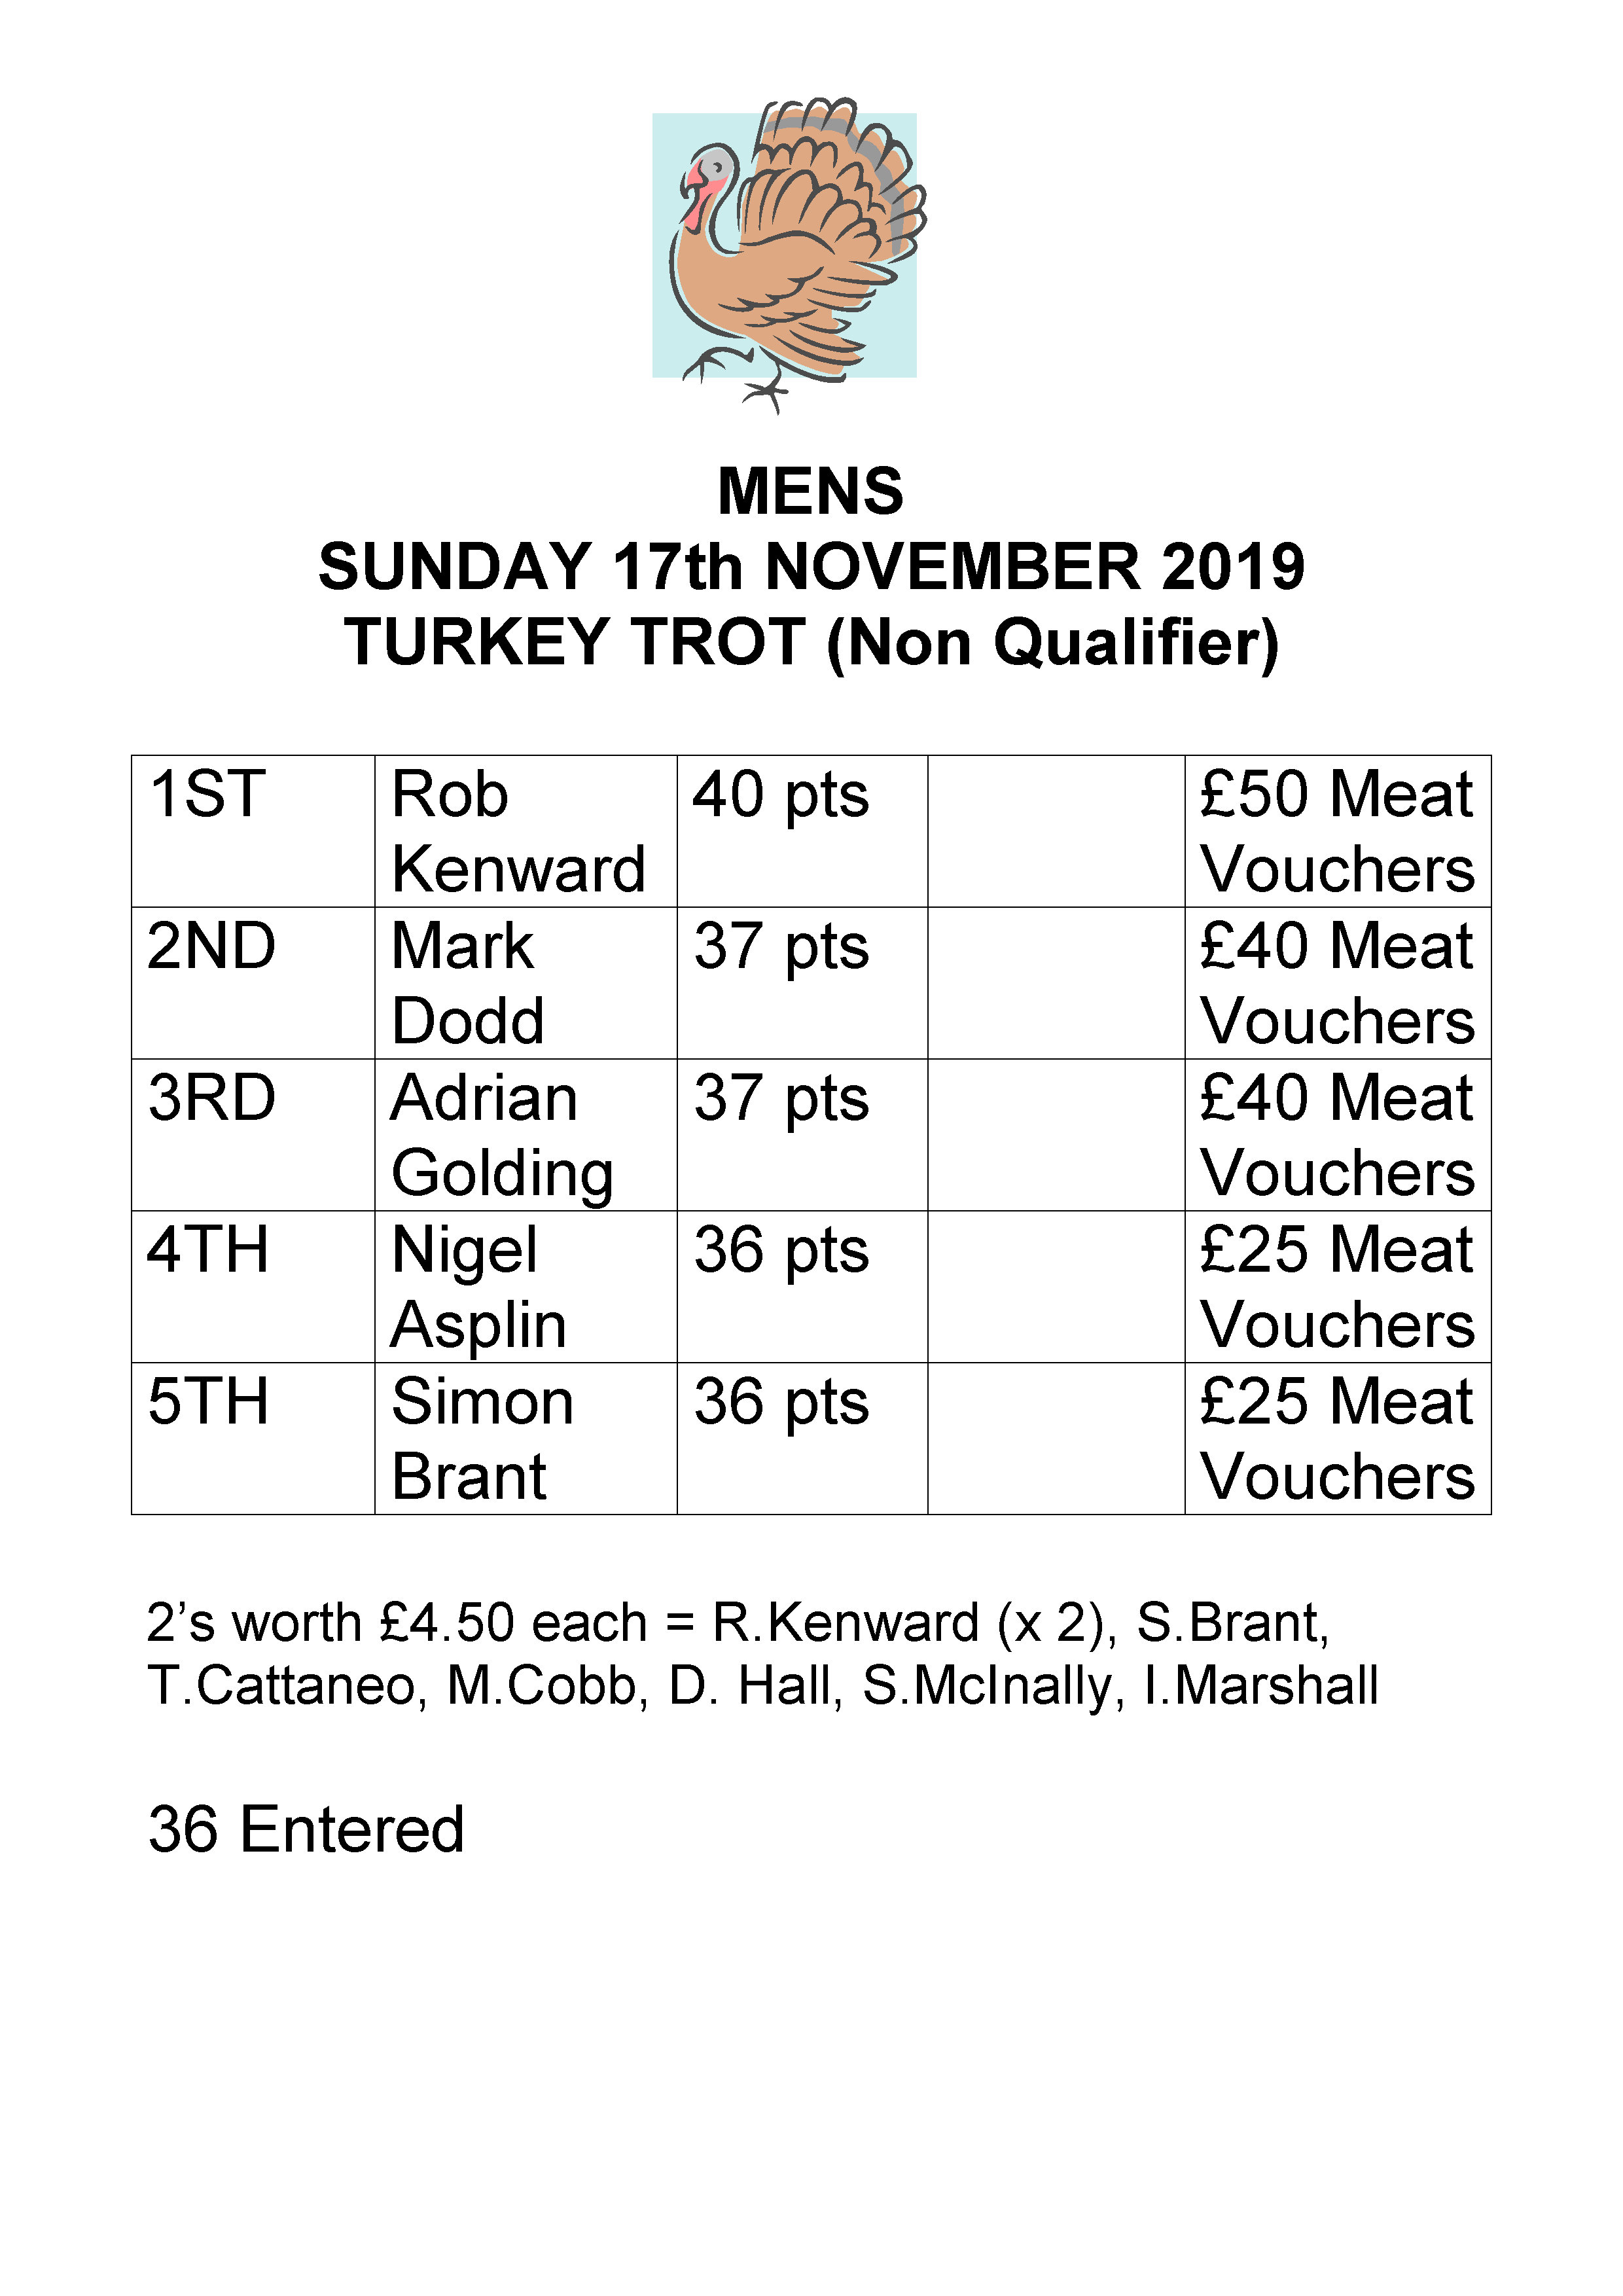 MENS SUN 171119 TURKEY TROT